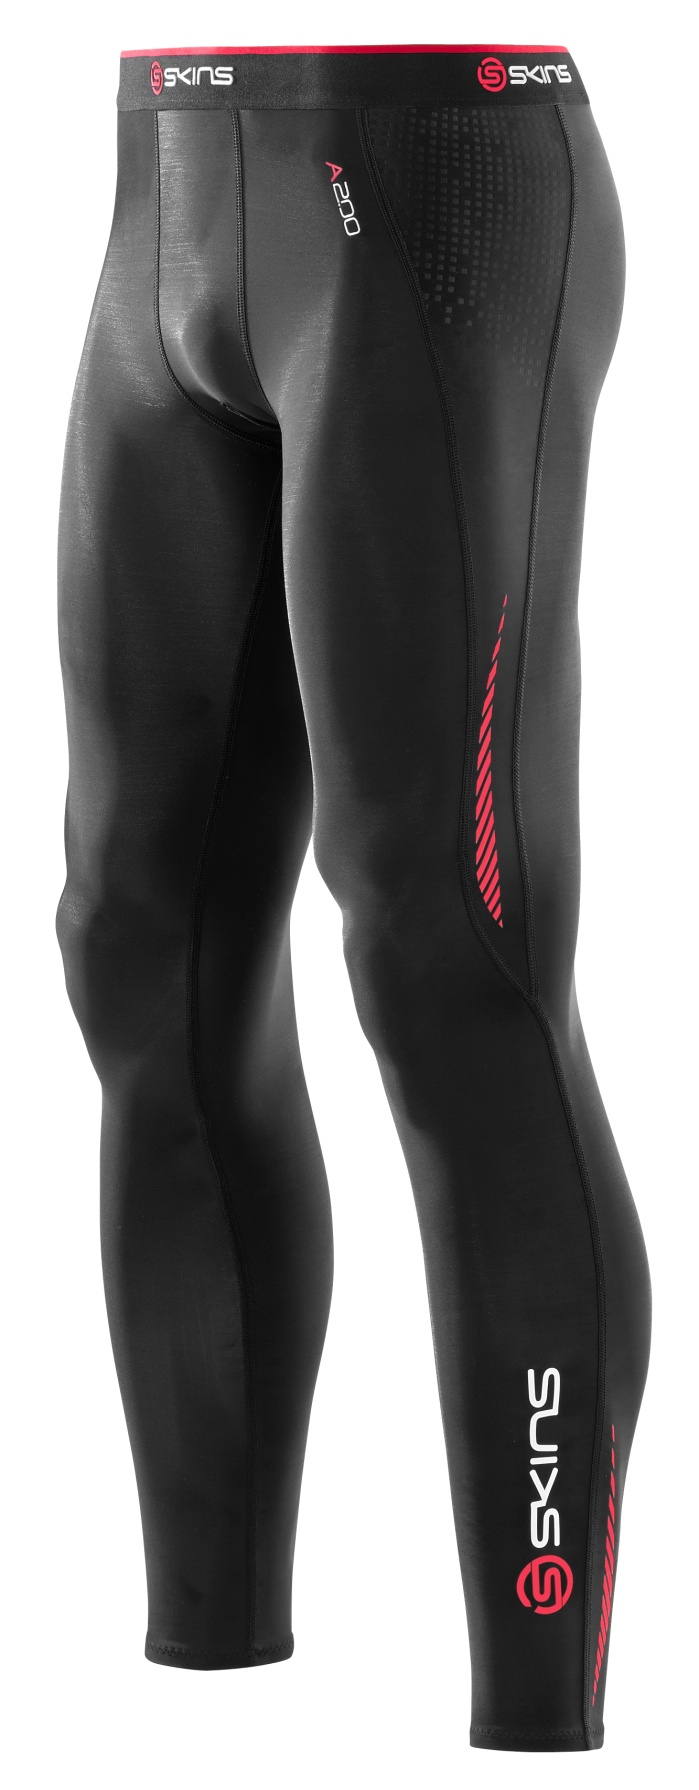 A200 Mens Long Tights Black/Red